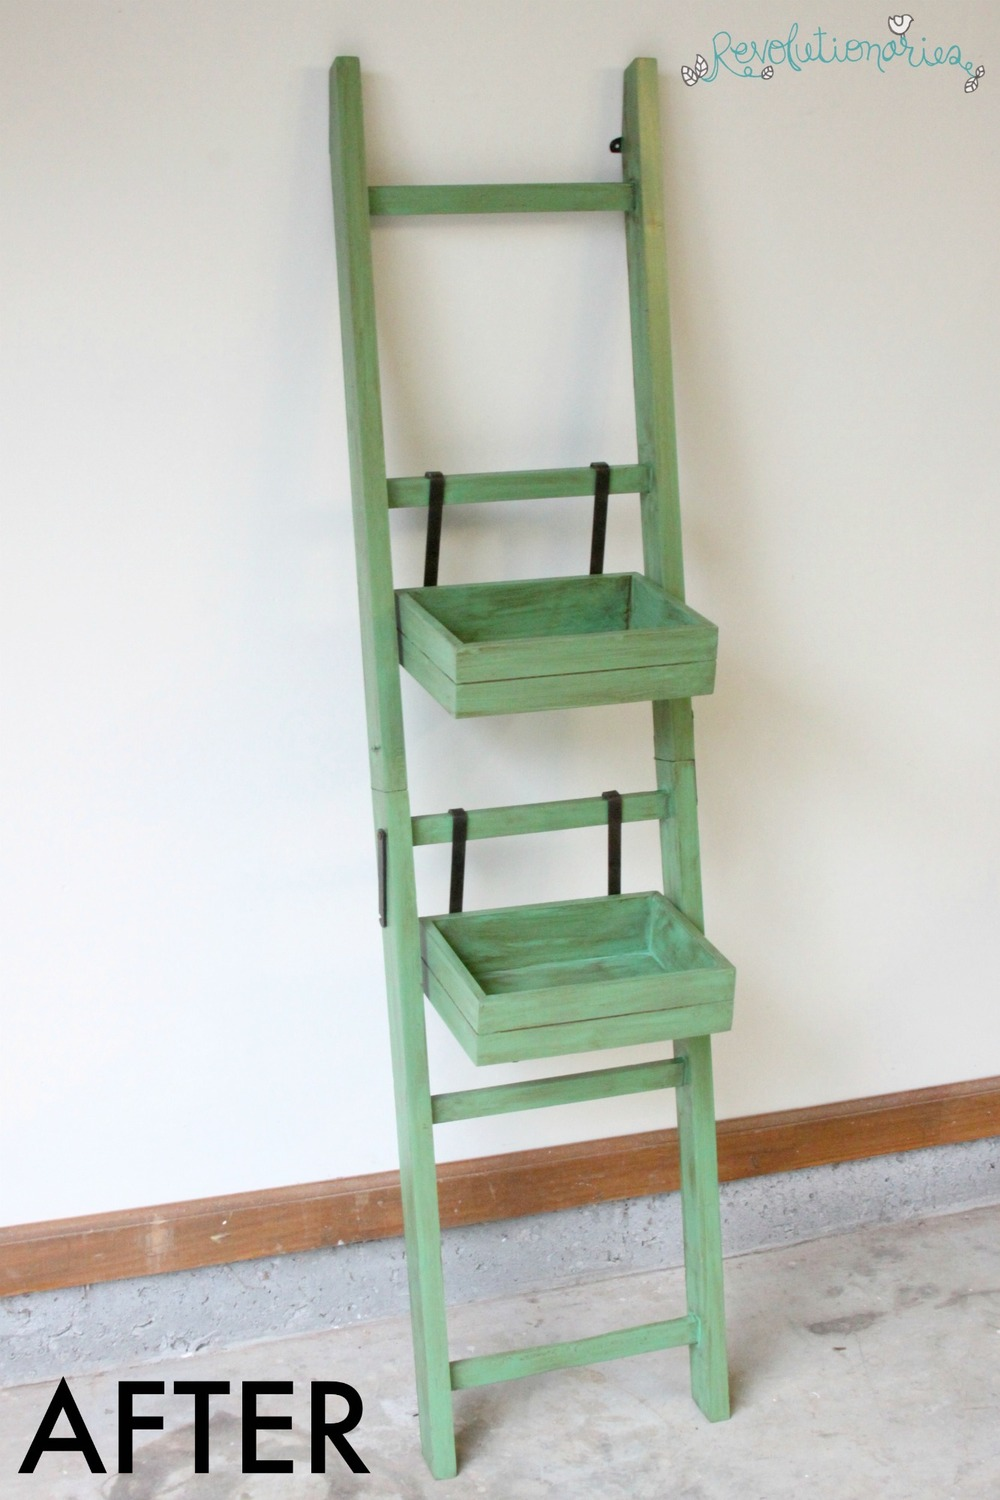 wagner-flexio-890-sprayer-ladder-after.jpg